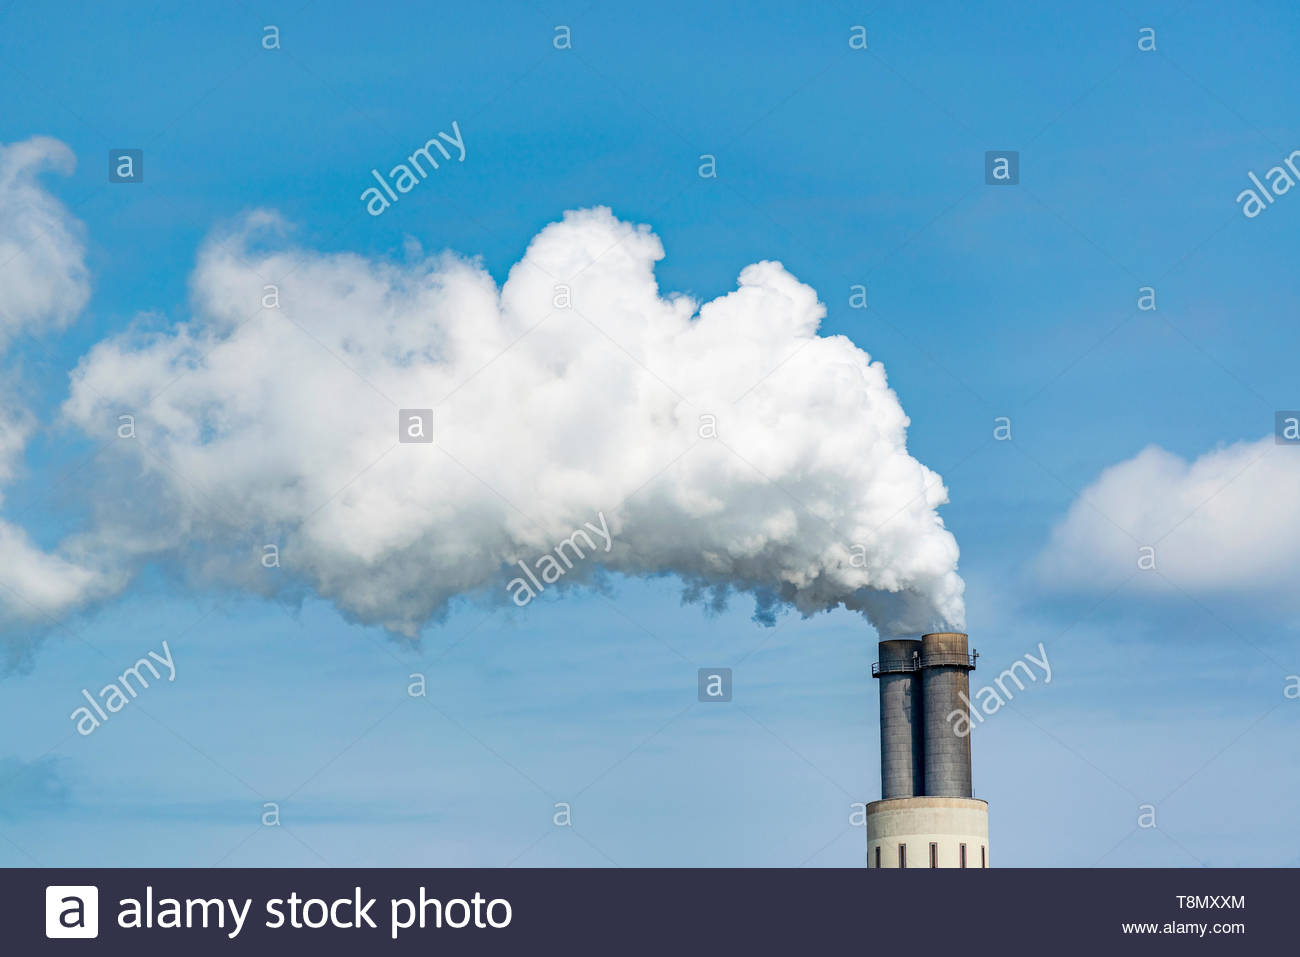 industrial chimneys or vents in an industrial plant - Stock Image